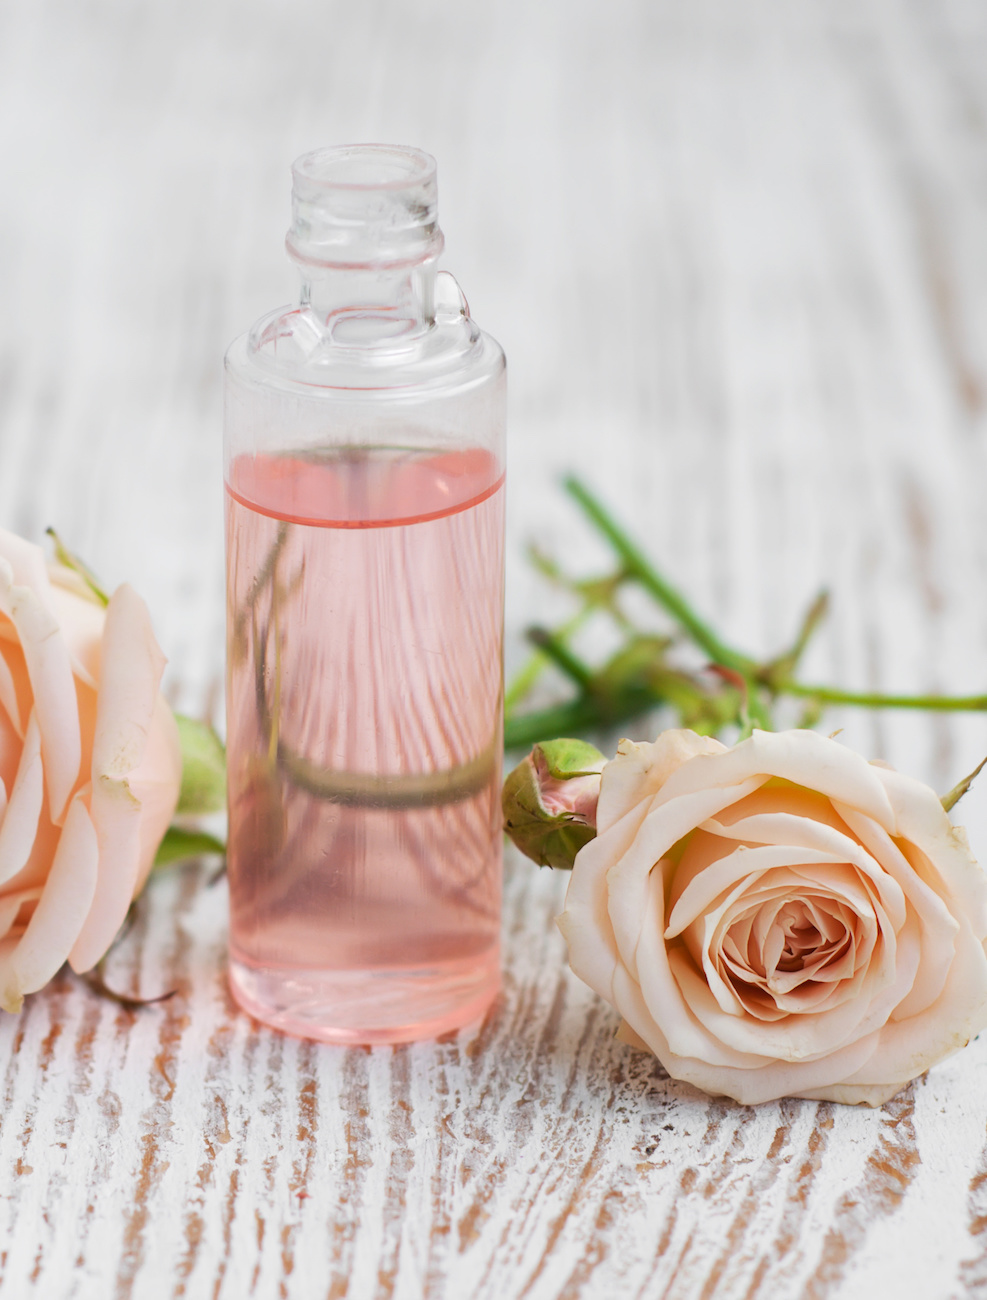 Rose Water - Helps to hydrate, revitalize and moisturize the skin giving it with that refreshed lookHelps to reduce the redness of irritated skin caused by acne, dermatitis and eczema